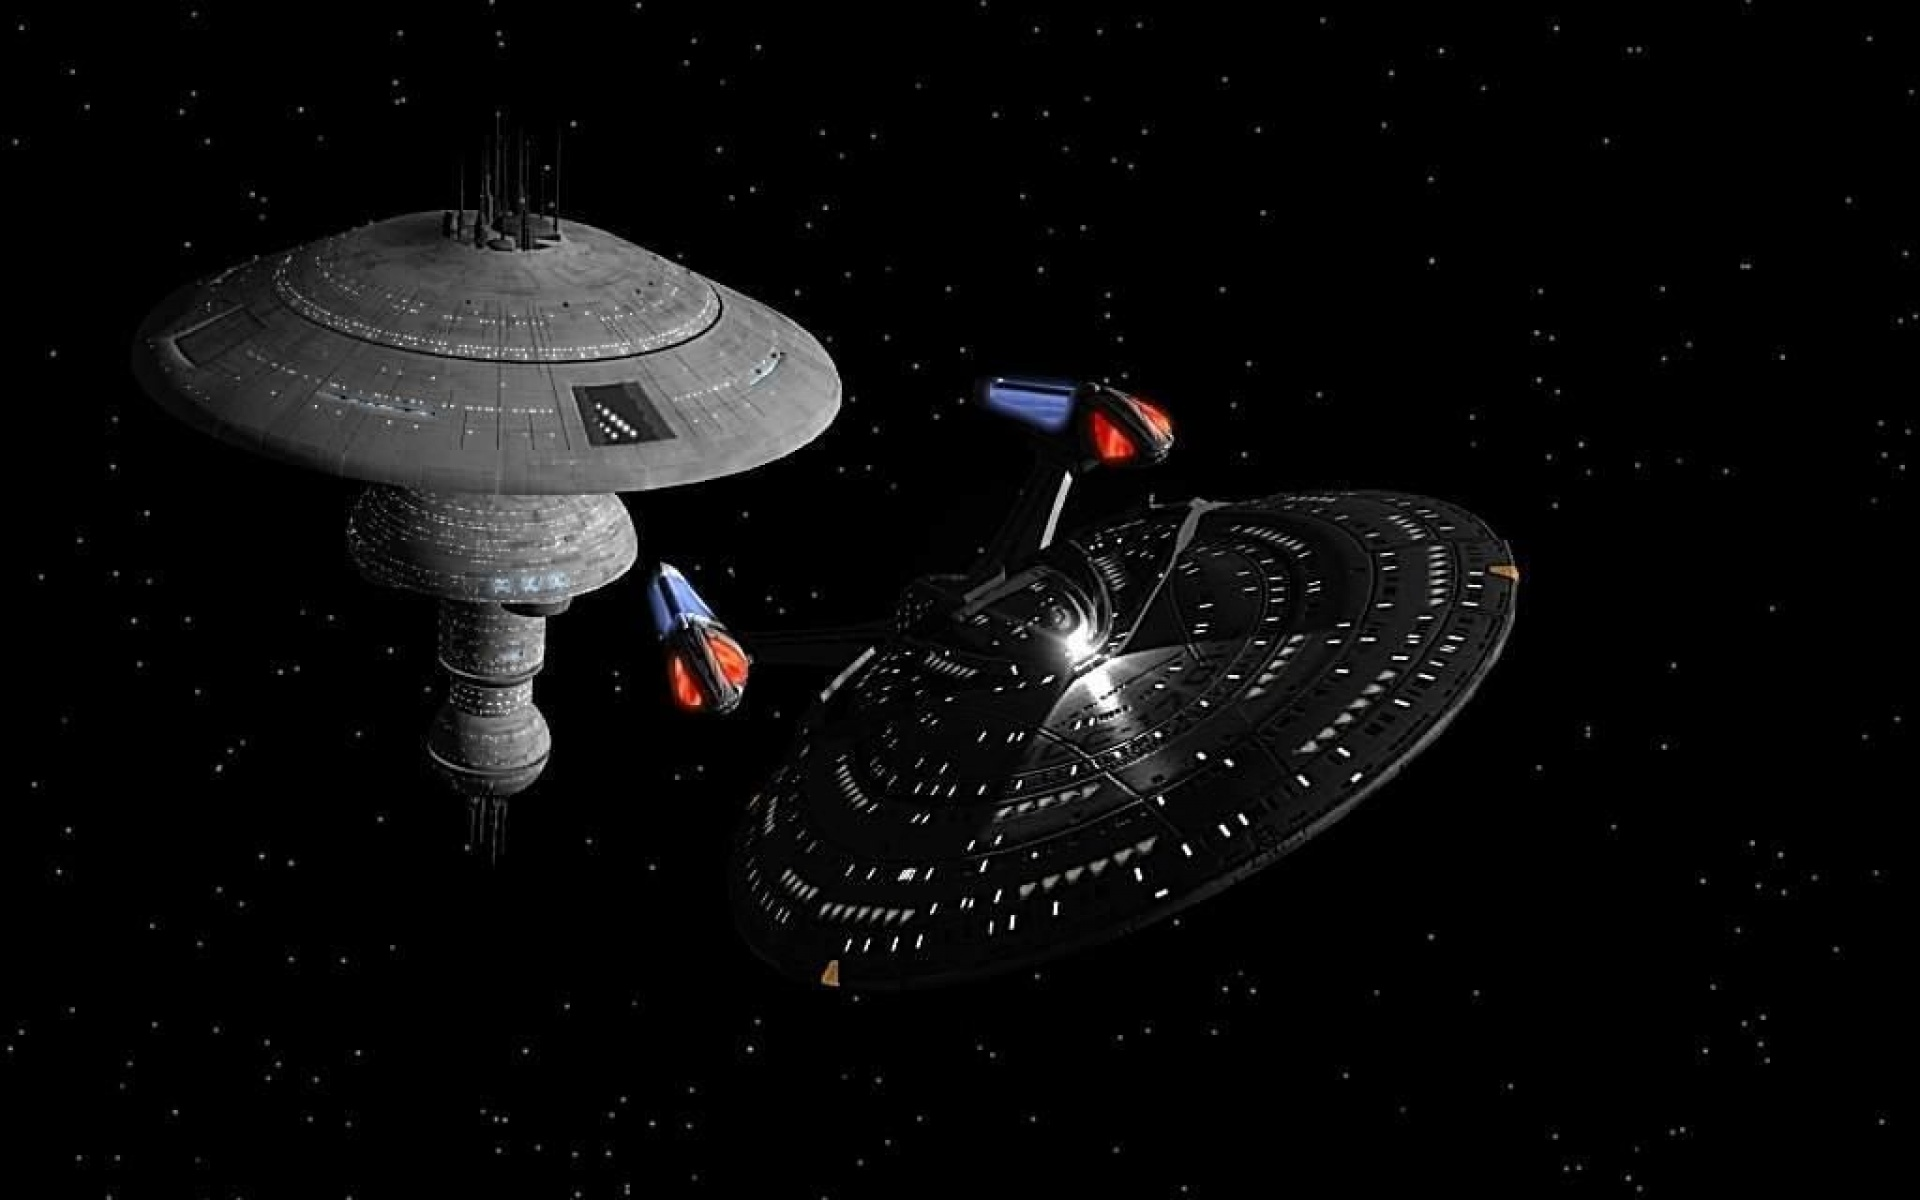 Star Trek Online 1920x1200 Wallpapers 1920x1200 Wallpapers Pictures 1920x1200